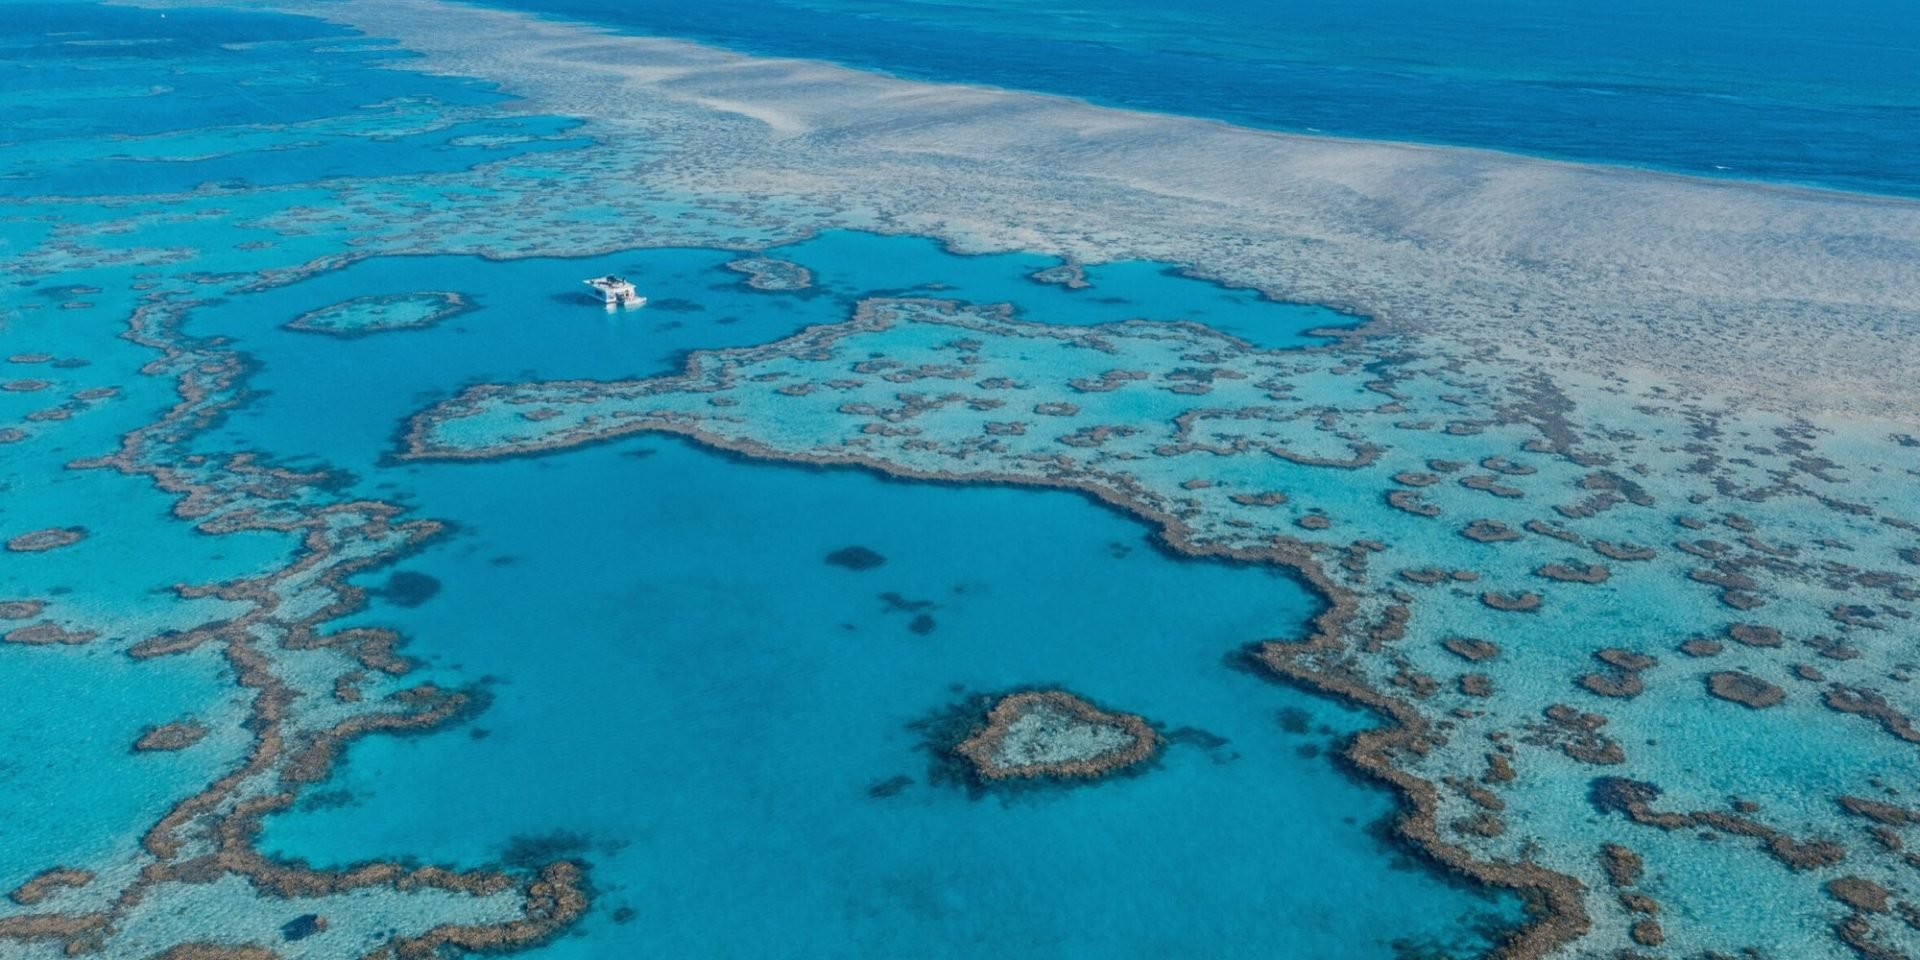 Image of the Great Barrier Reef. Bright blue waters and pale brown reefs